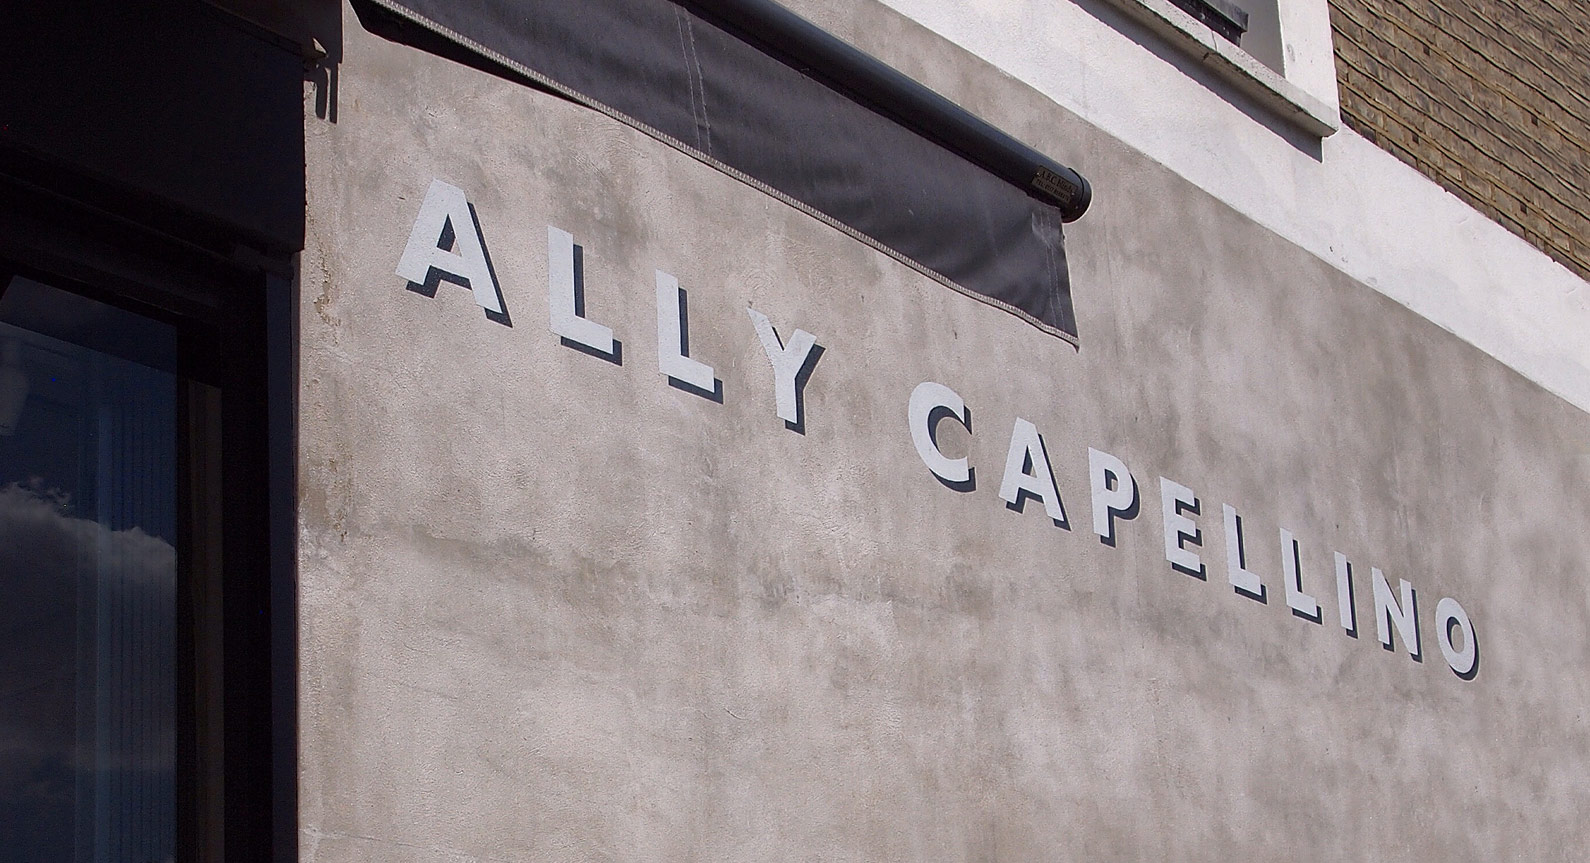 Bags Of Style - Introducing The Latest Arrivals From Ally Capellino